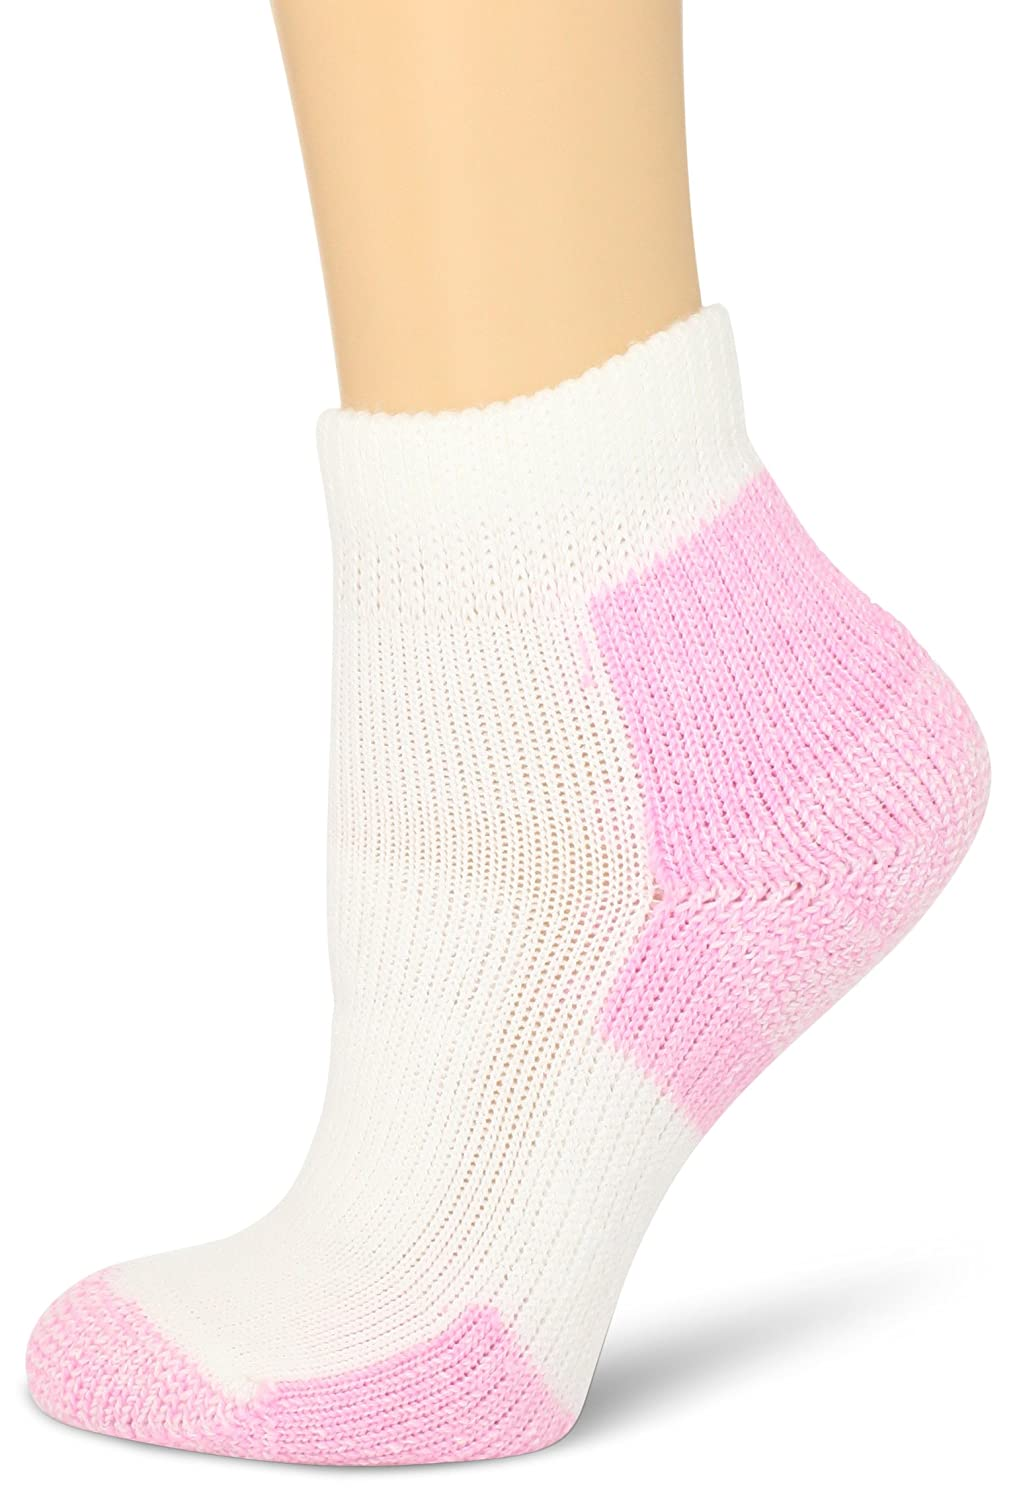 Women's Thick Padded Pink Walking Ankle Socks